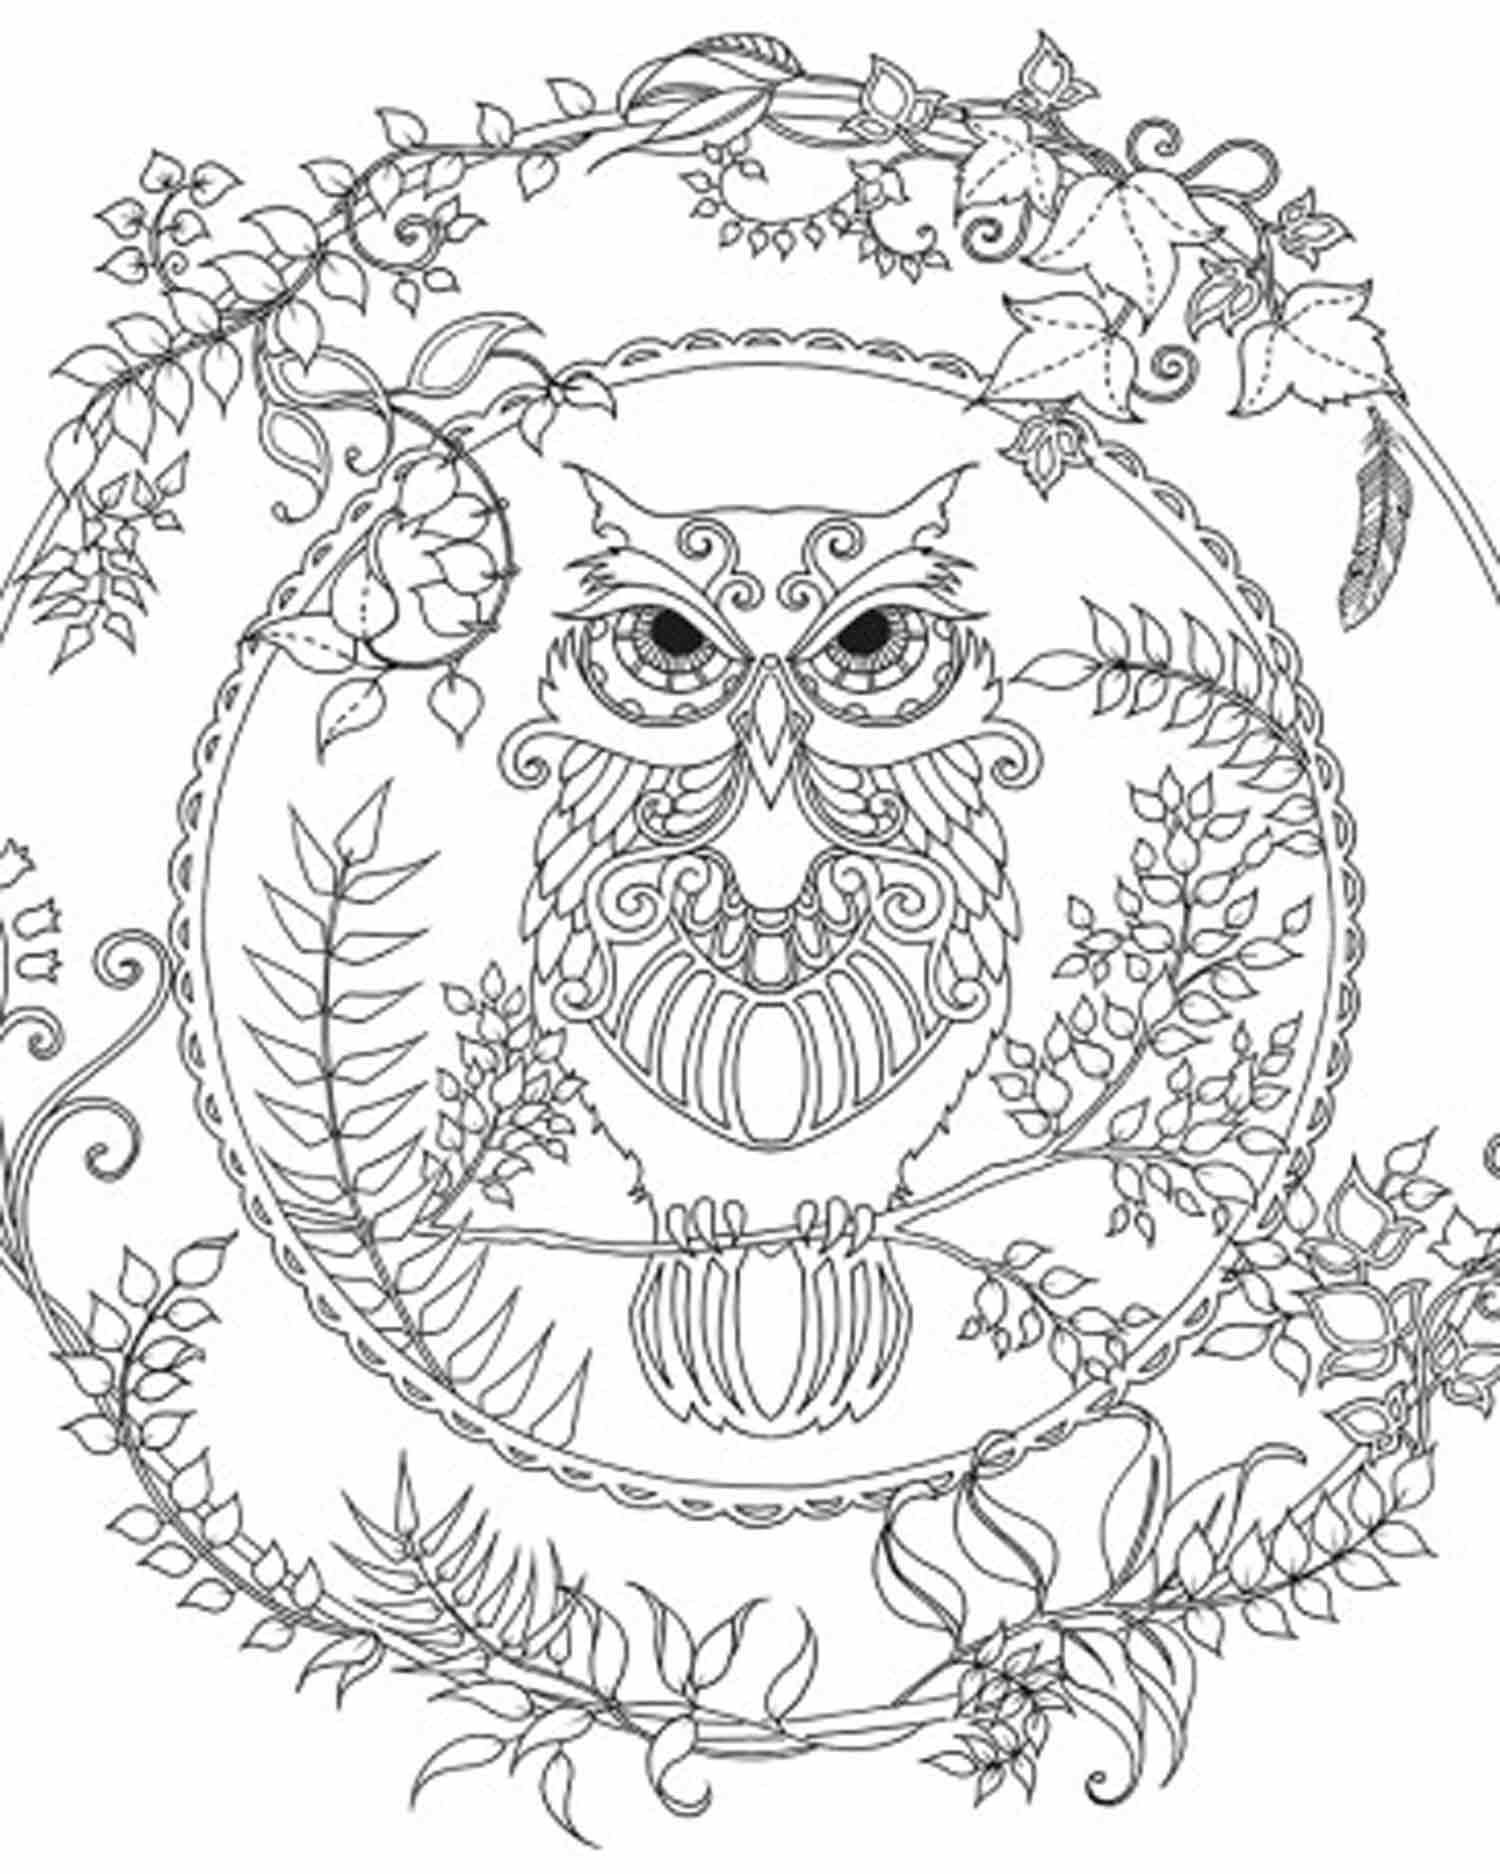 coloring book johanna : Straight From The Pages Of Enchanted Forest By Johanna Basford S Adult Coloring Book Now It Is Your Turn Post Your Finished Artwork Using The Comment